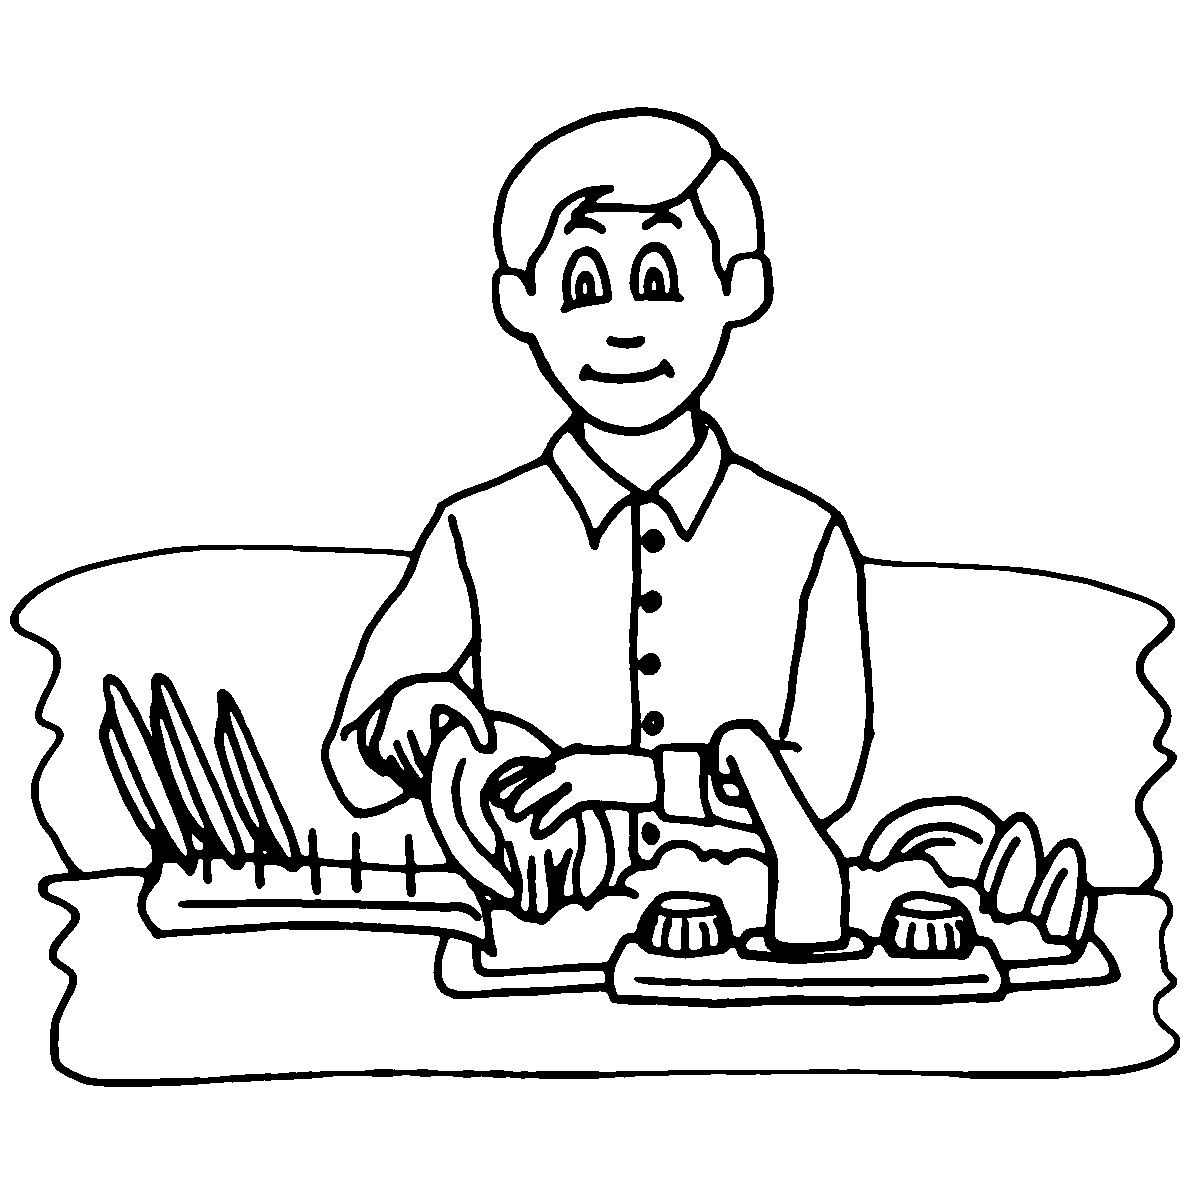 Dog Stand Up Coloring Page Dog coloring page, Online